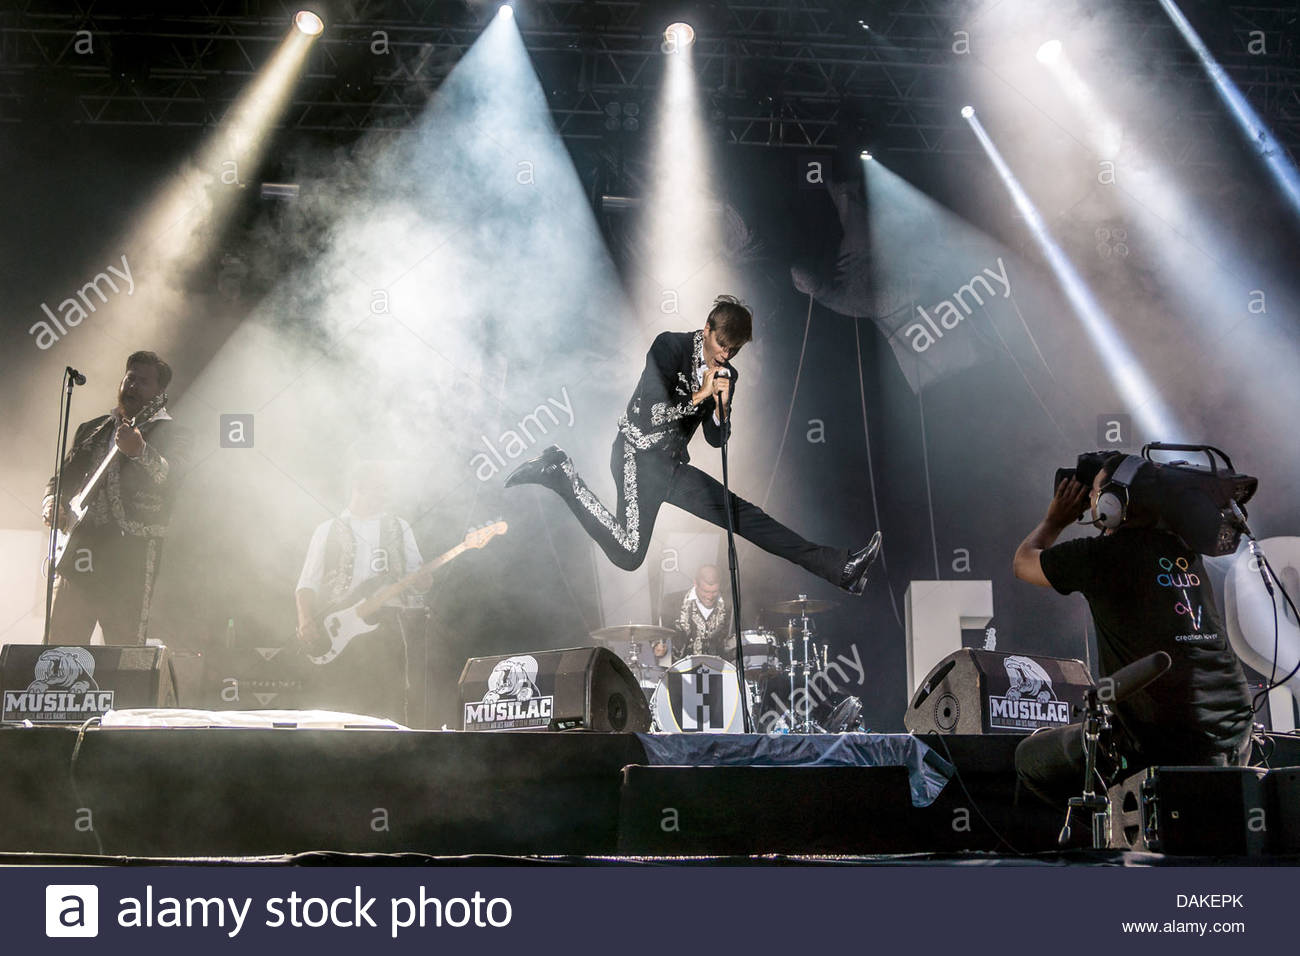 swedish-rock-band-the-hives-performing-l